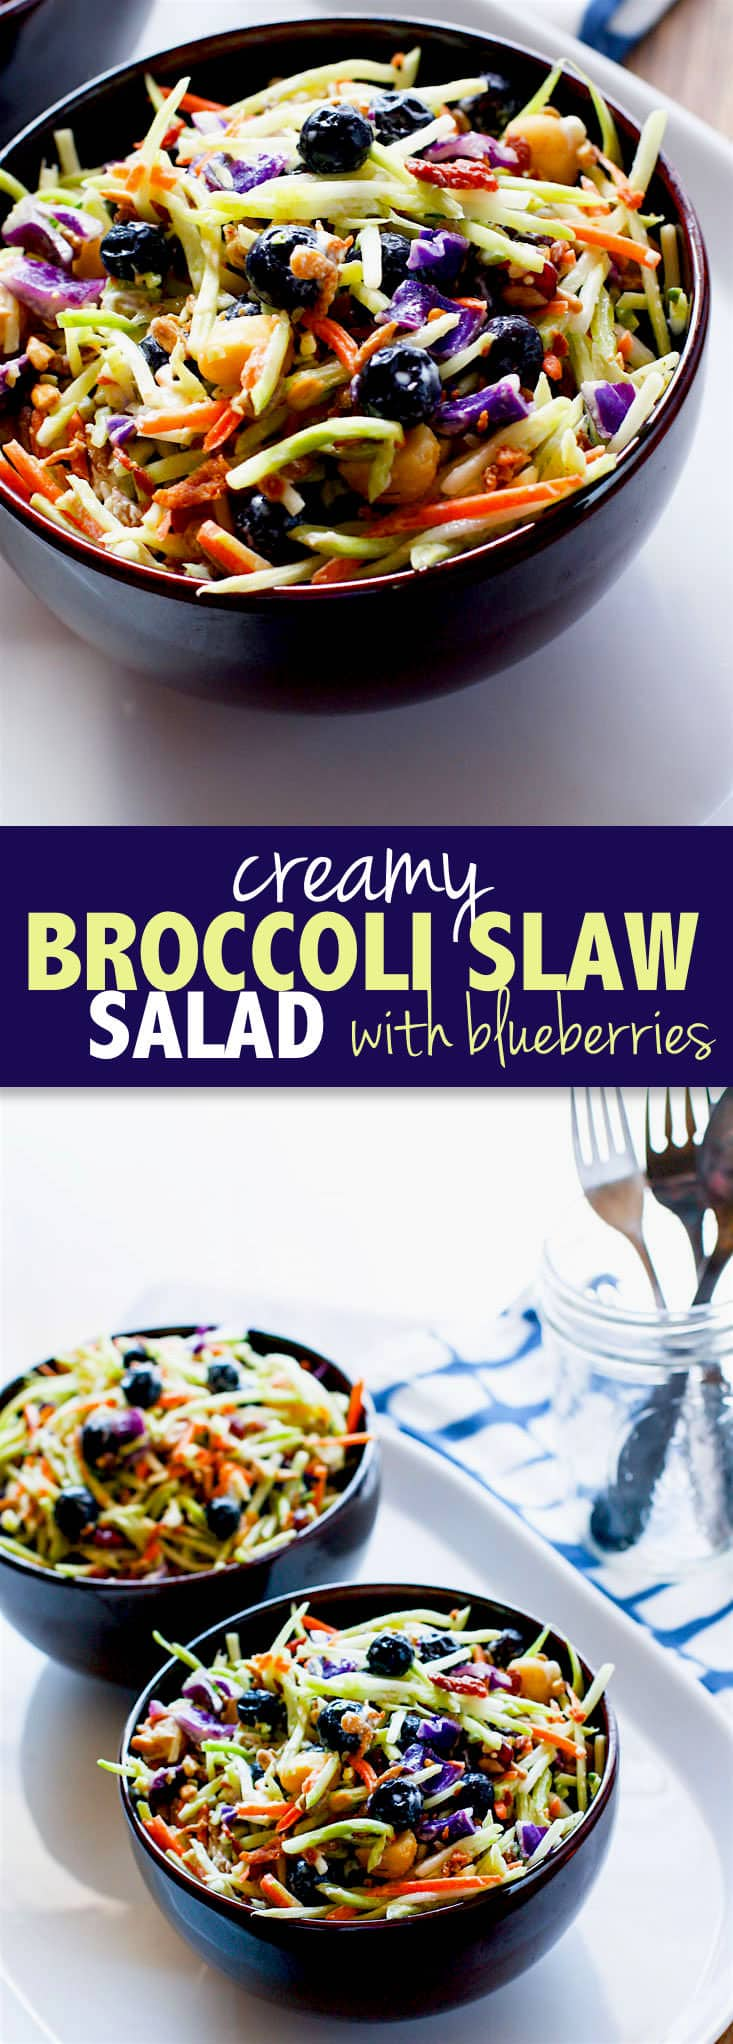 Perfectly Creamy and Tart Broccoli Slaw Salad with Blueberries. It's packed with antioxidants and probiotics! The tang comes from using a kefir yogurt blend instead of mayo. Which also makes it healthy and gut friendly. Super clean eating with great flavor!